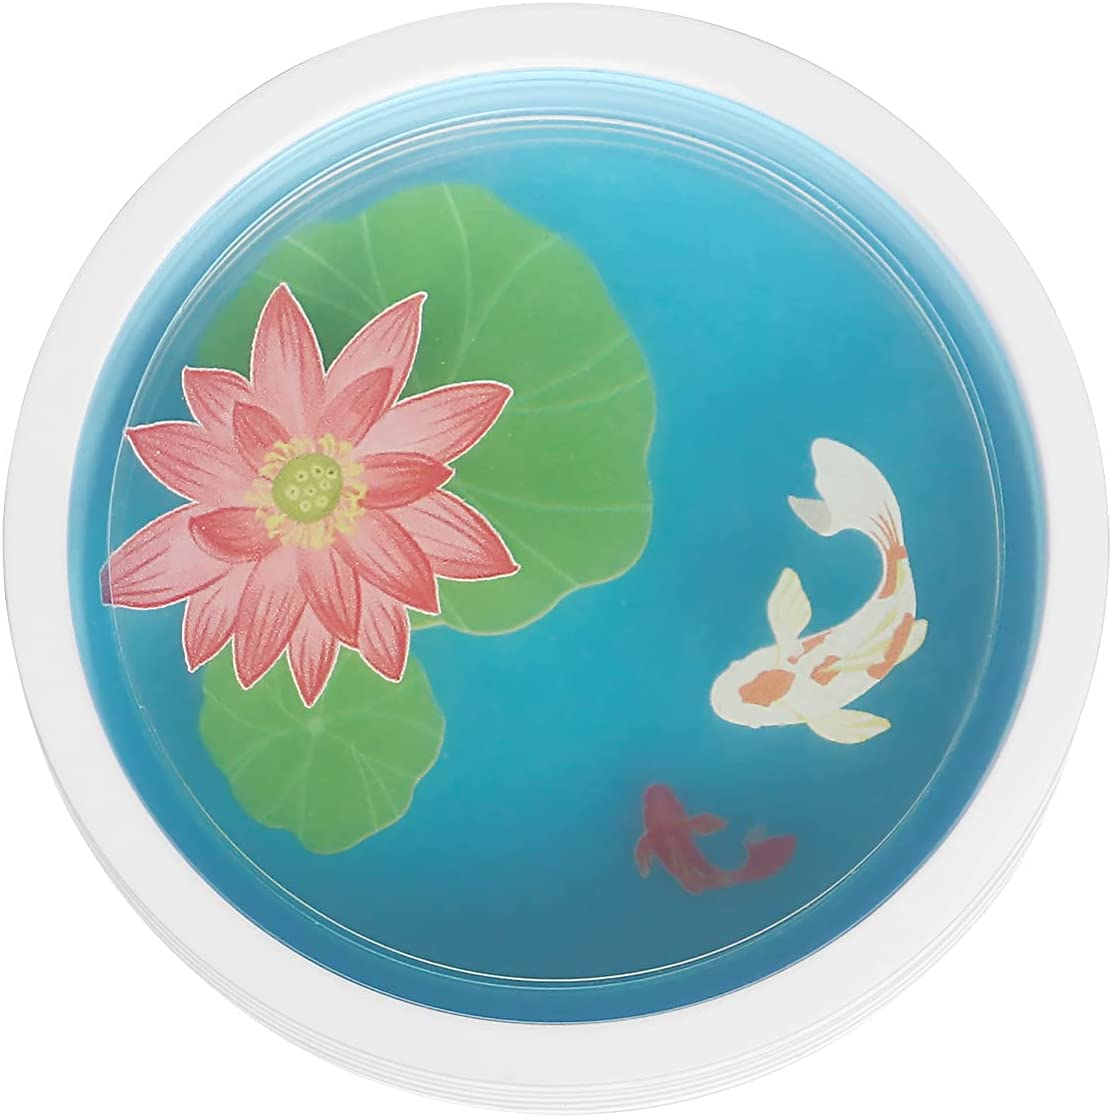 Coasters for Drinks, Set of 5 Funny Coaster for Home Decor, Silicone Coasters for Wooden Coffee Tables, Great Gift for Parents and Children (Lotus)